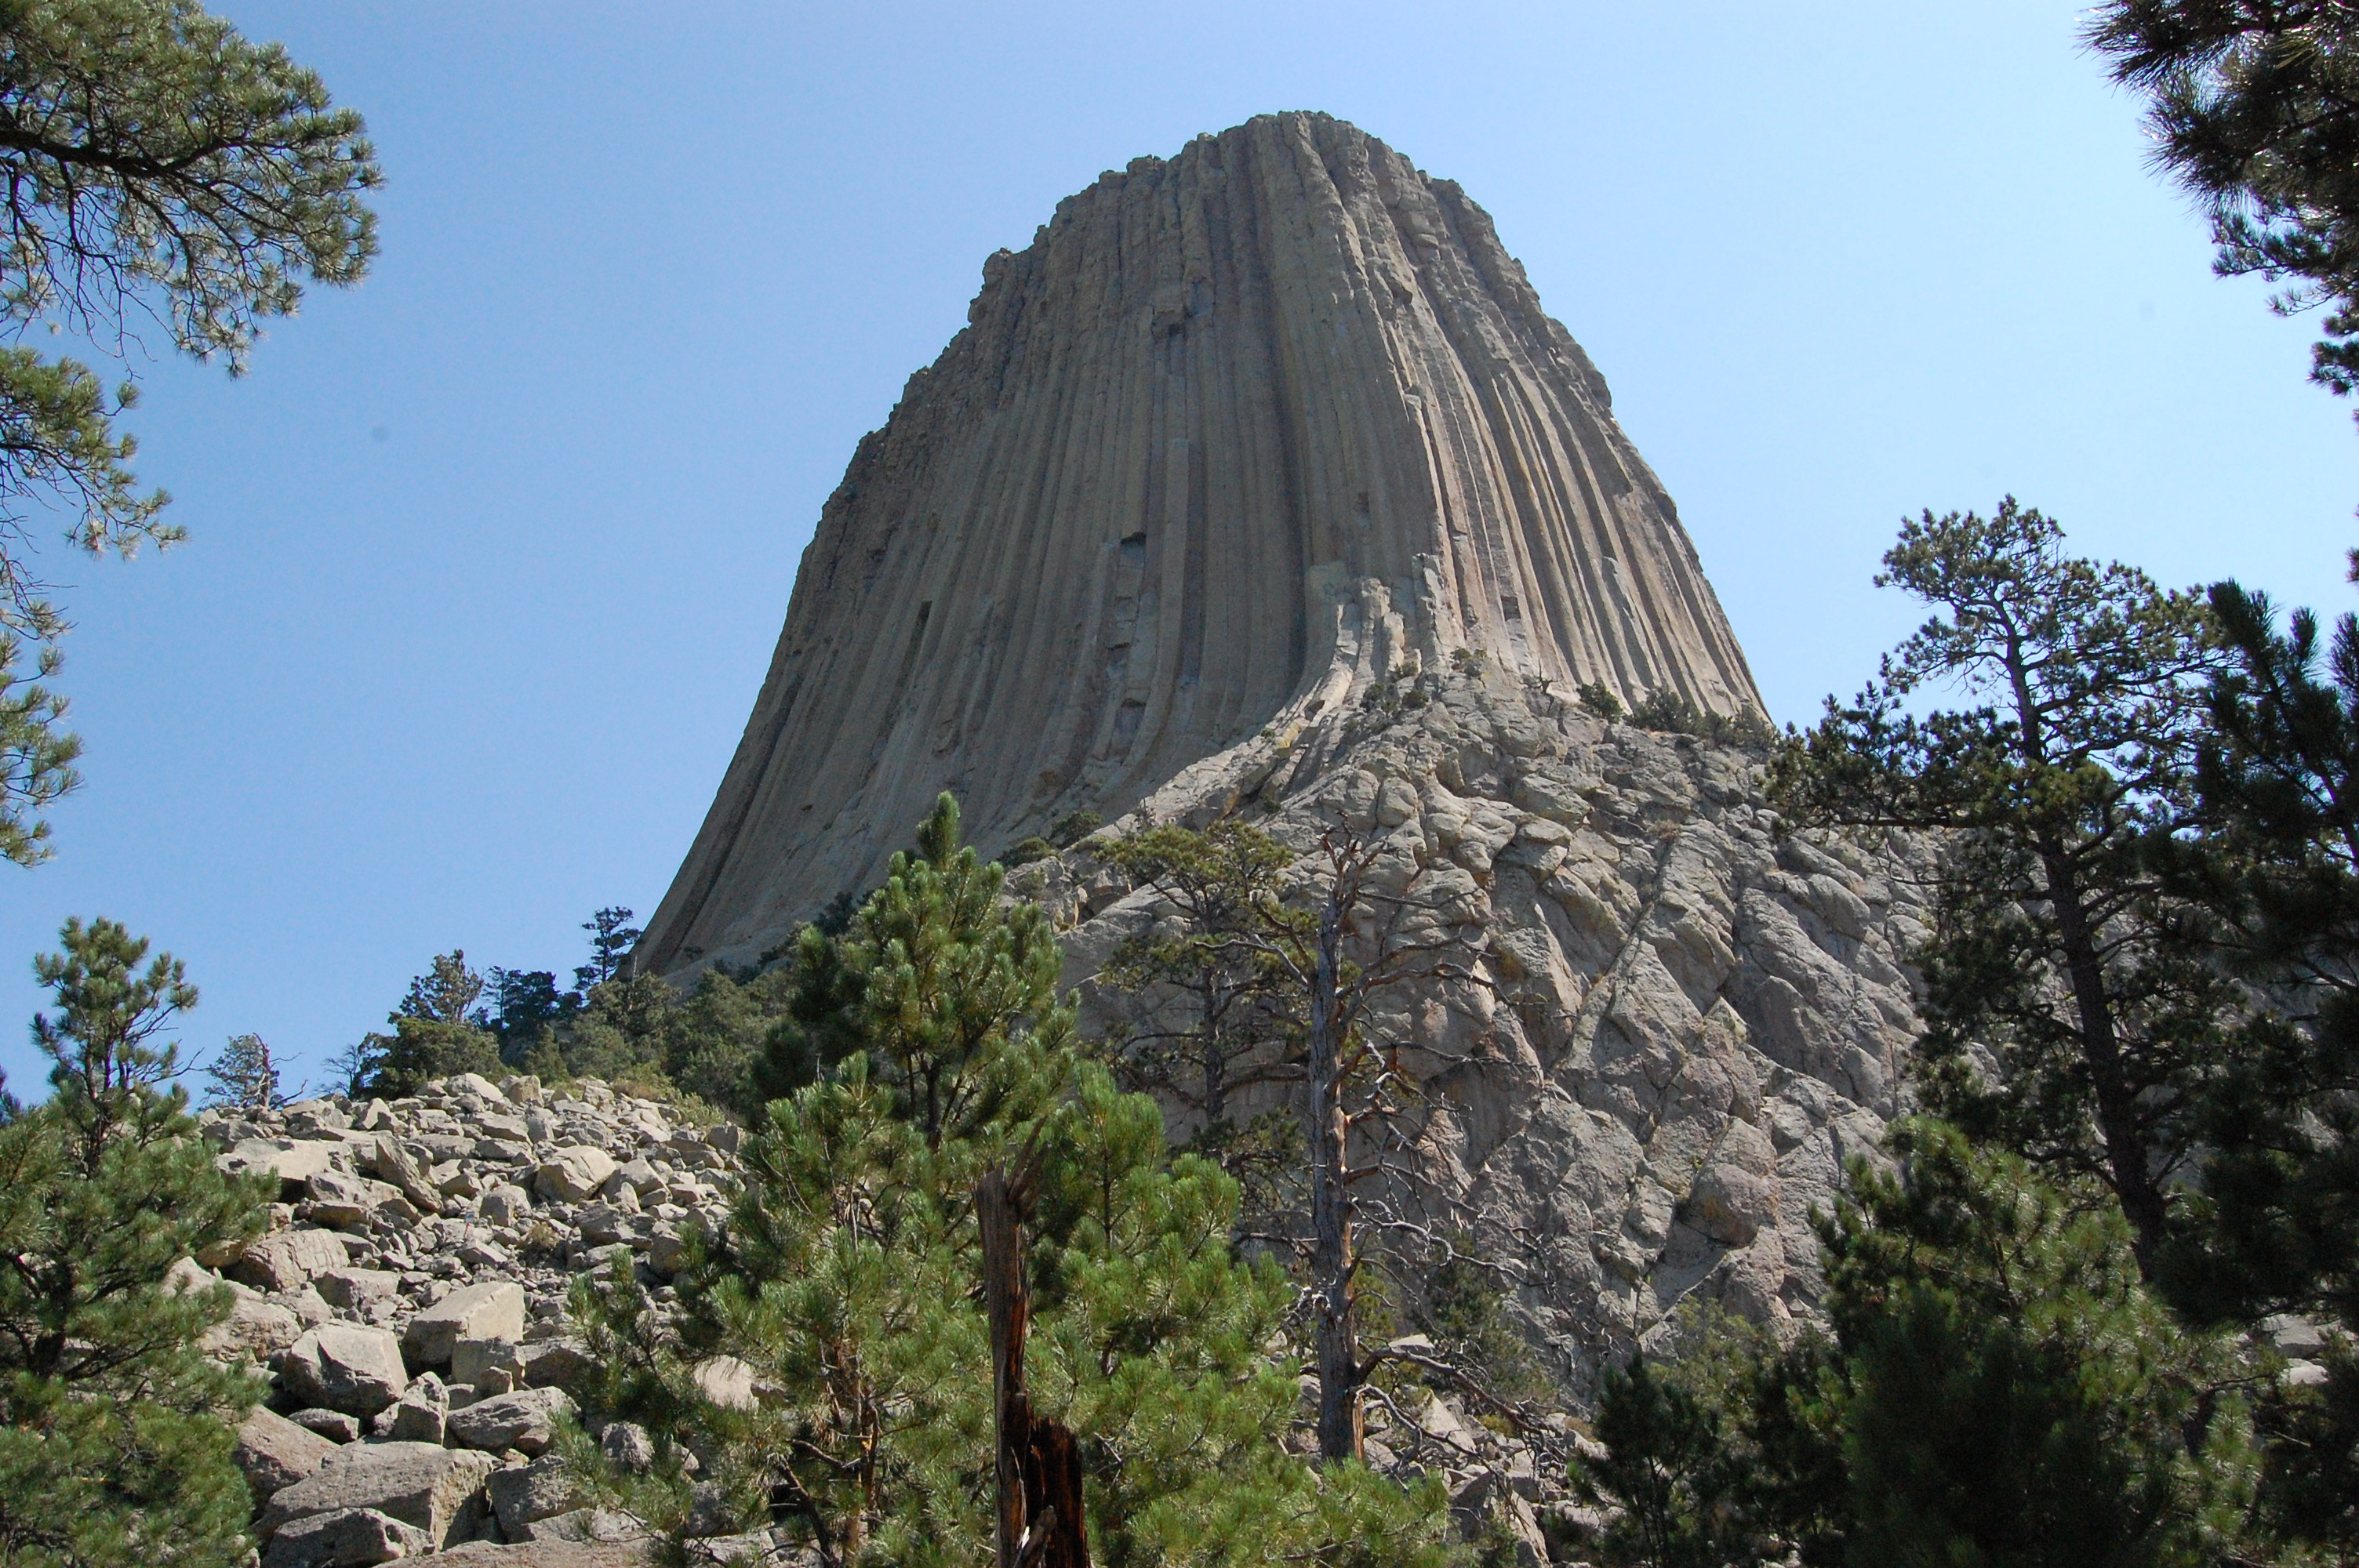 devils tower hindu personals The devils tower is a tourist attraction as well as a national monument located in the bear lodge mountains, wyoming, the us, the tower is 867 ft from top to base devils tower is a 40 million year old phenomenon with the top being 5,112 ft above the sea level but the tower, before it surfaced, was underground it is by-product of.